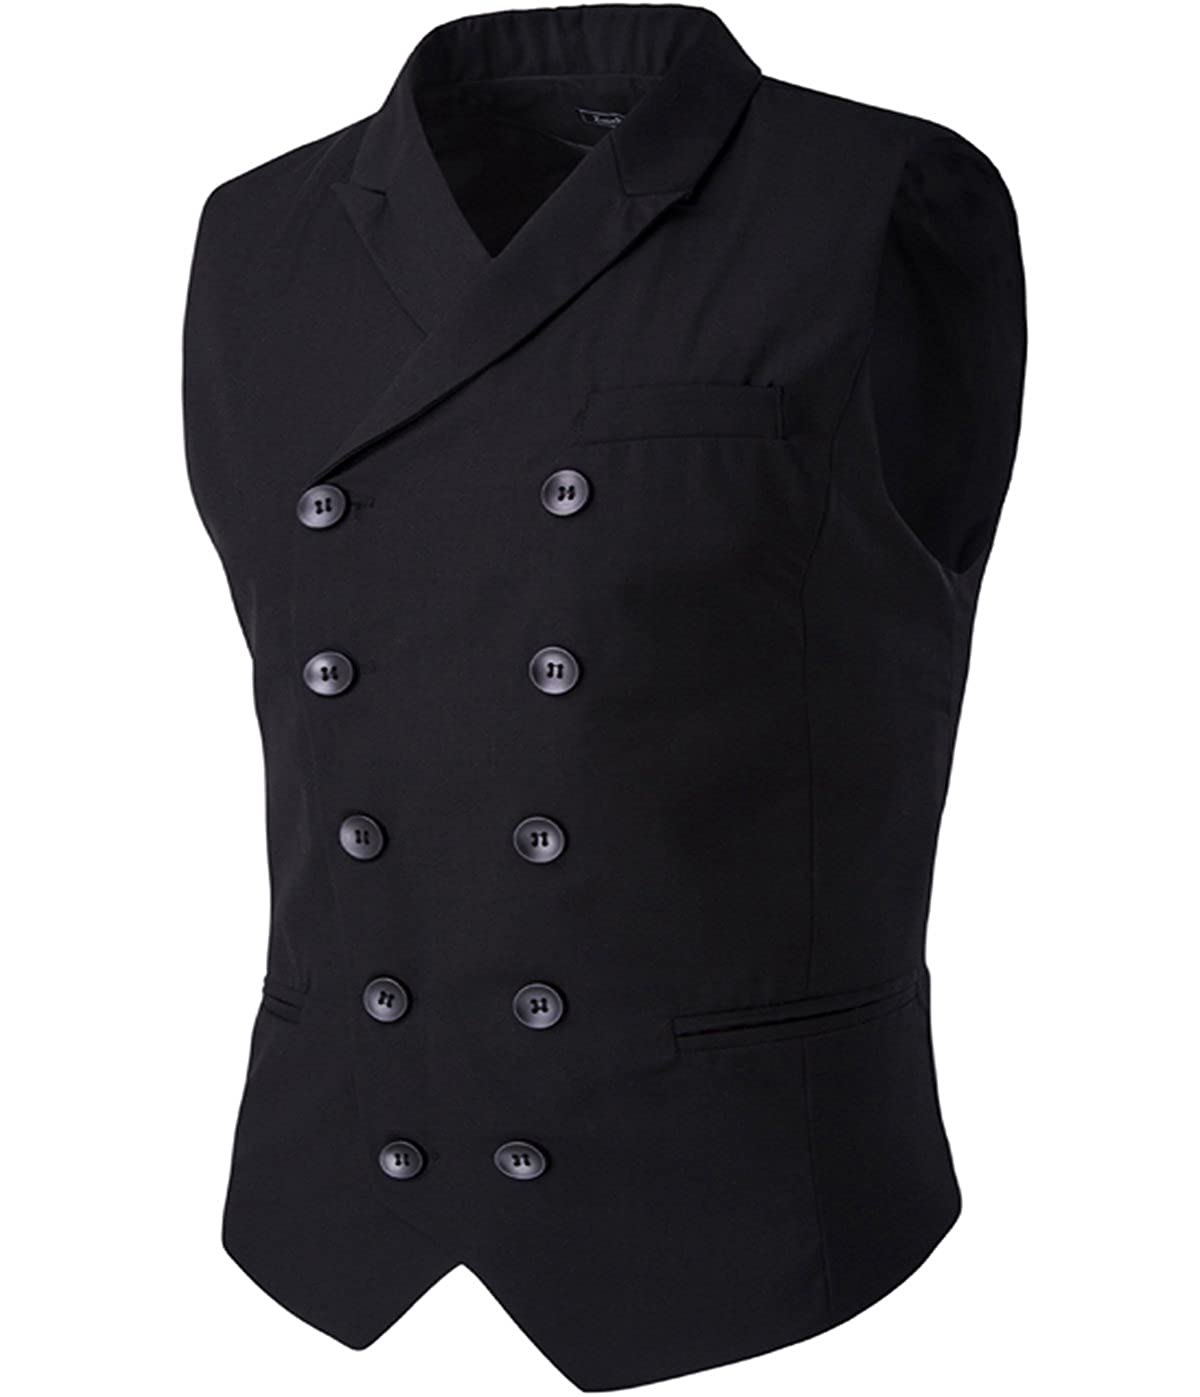 Men's Steampunk Jackets, Coats & Suits Cloudstyle Mens Vest Fashion Slim Fit Double-Breasted Solid Vest $24.99 AT vintagedancer.com